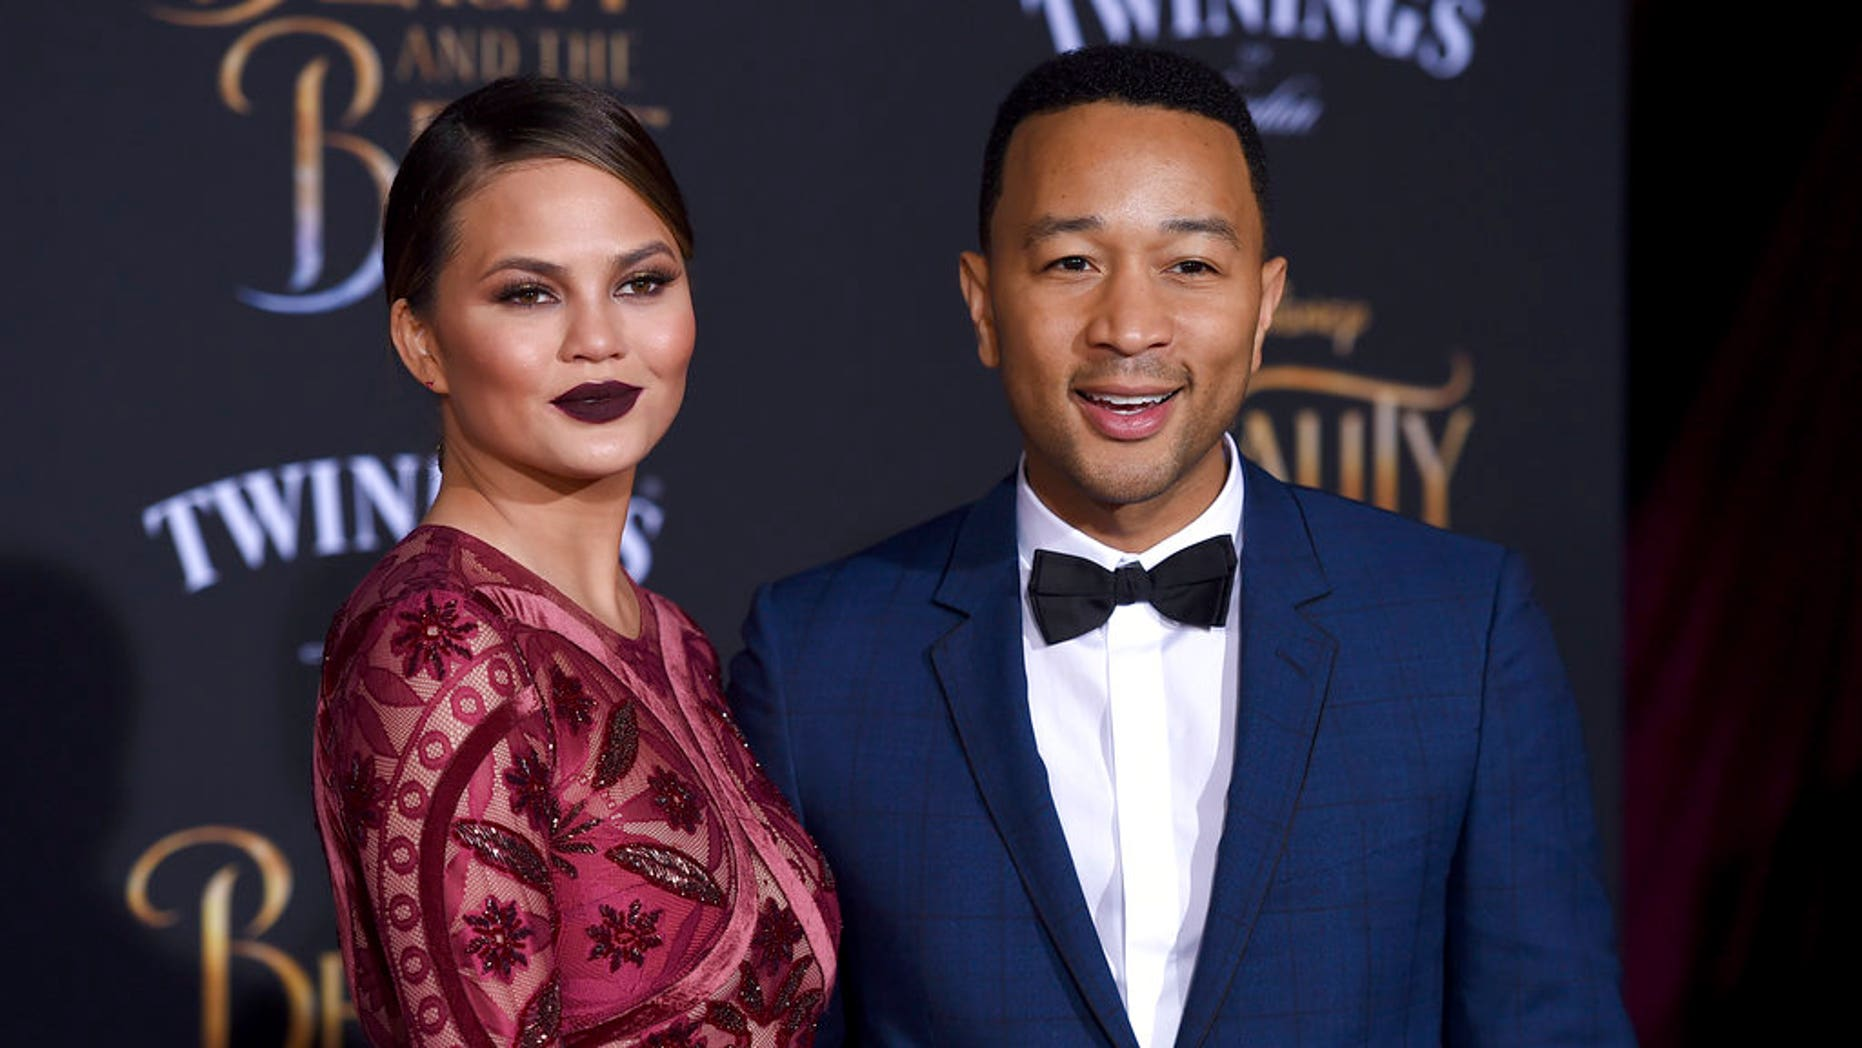 Chrissy Teigen and John Legend will headline the House Democrats' annual retreat.